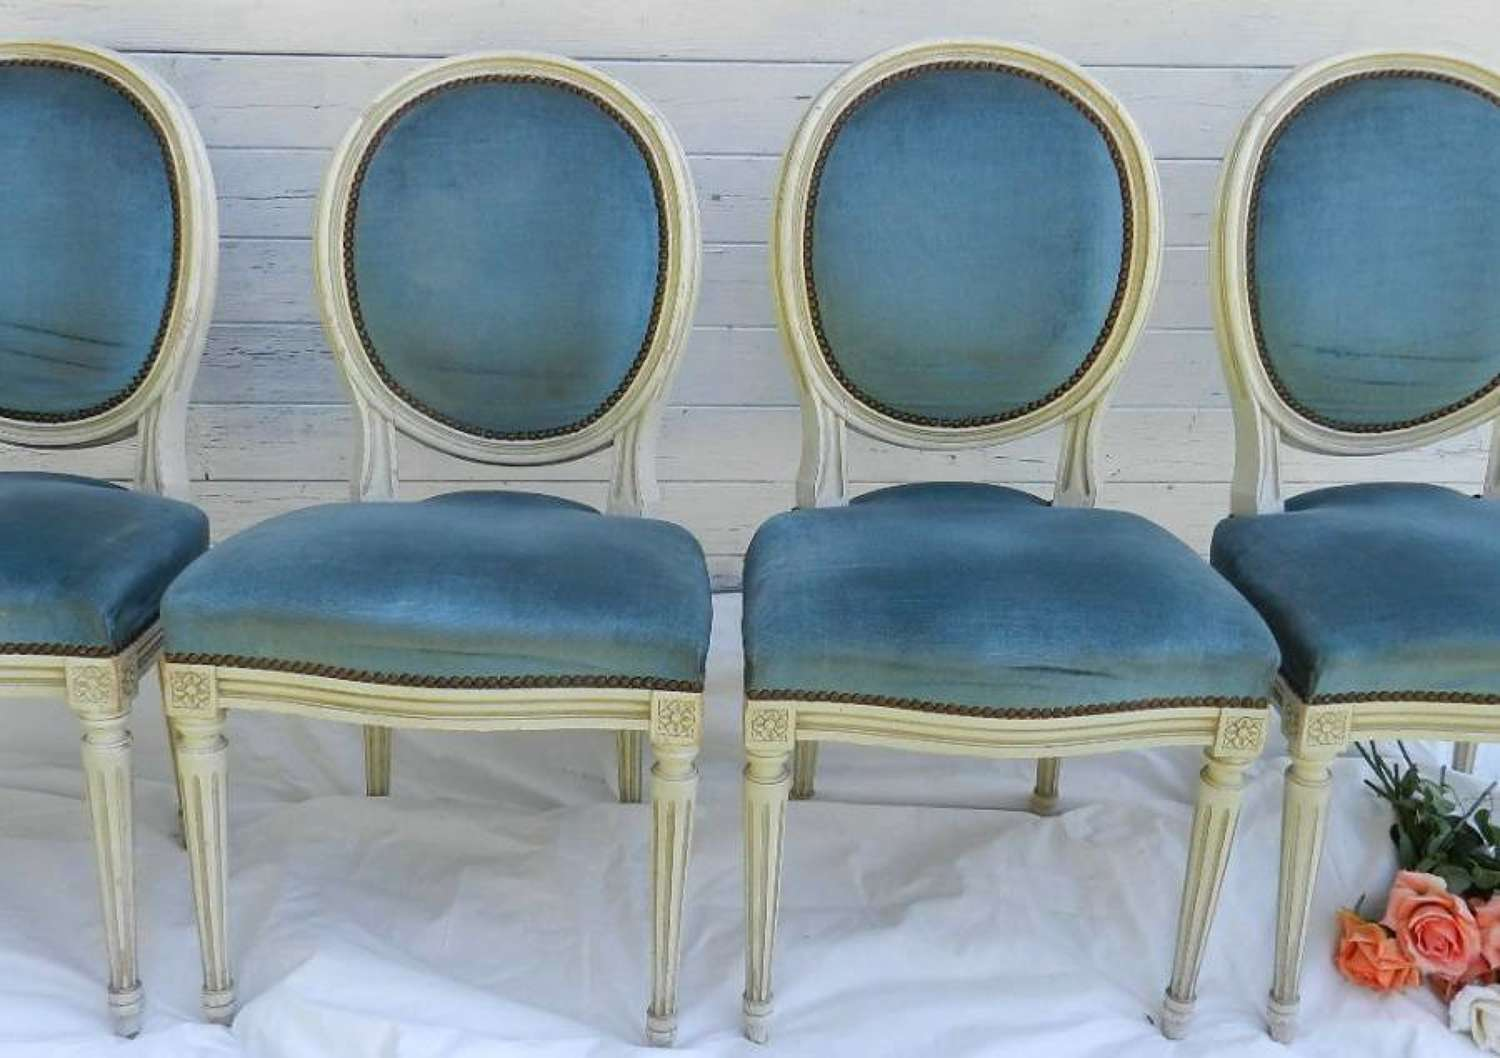 SET of 4 FRENCH VINTAGE LOUIS XVI revival MEDALLION BACK CHAIRS